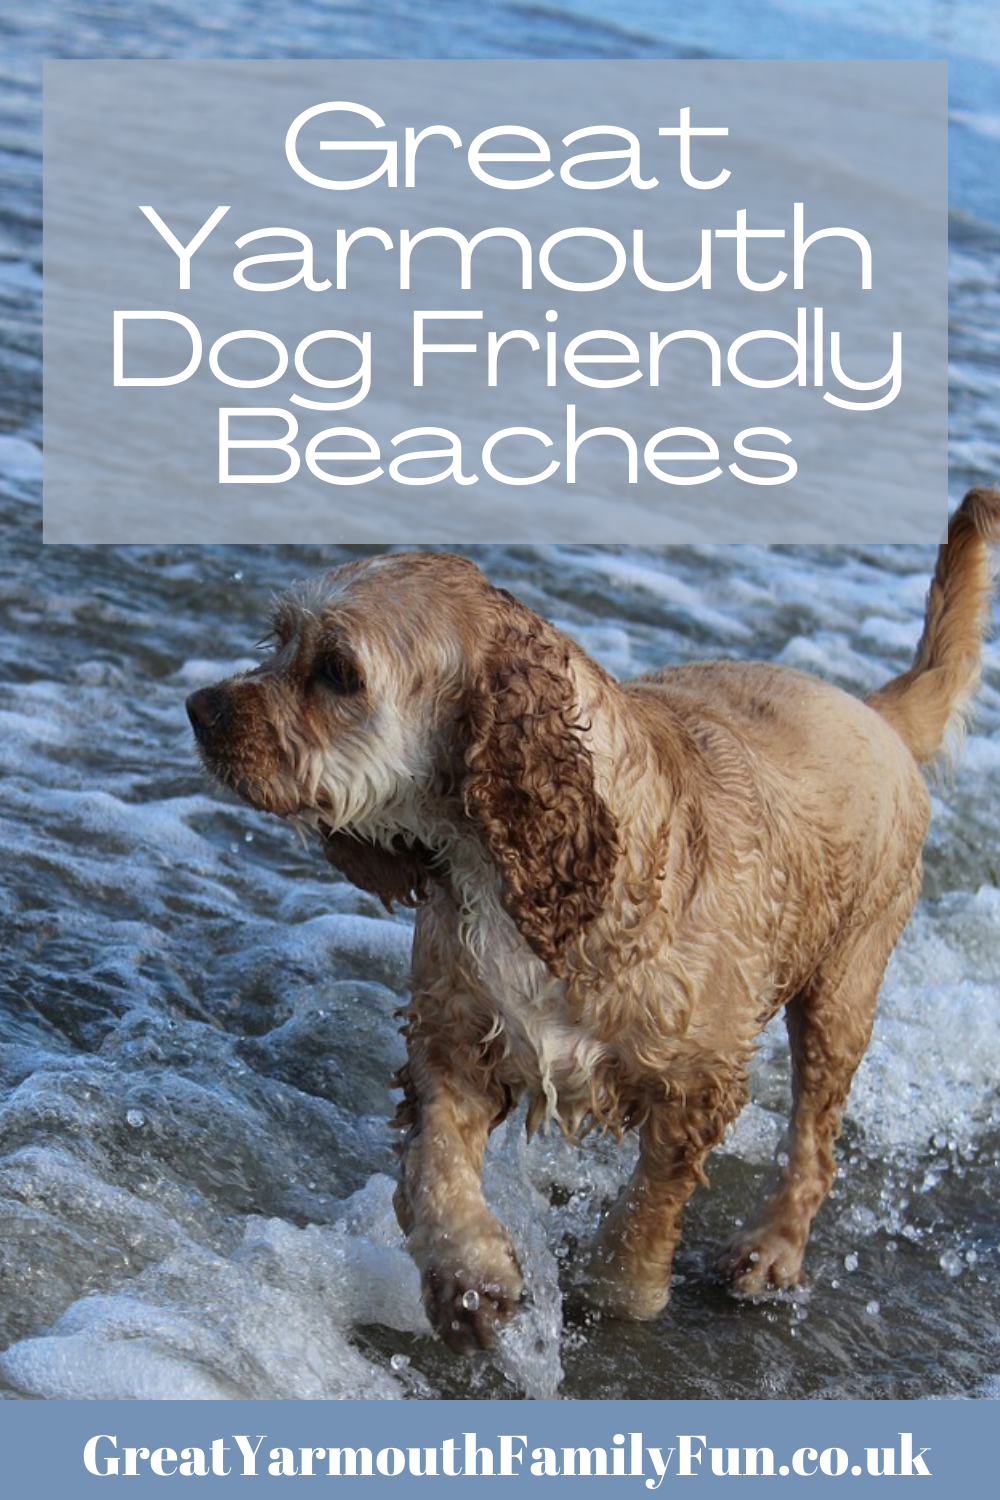 Great Yarmouth Dog Friendly Beaches In 2020 Dog Friendly Beach Yarmouth Great Yarmouth